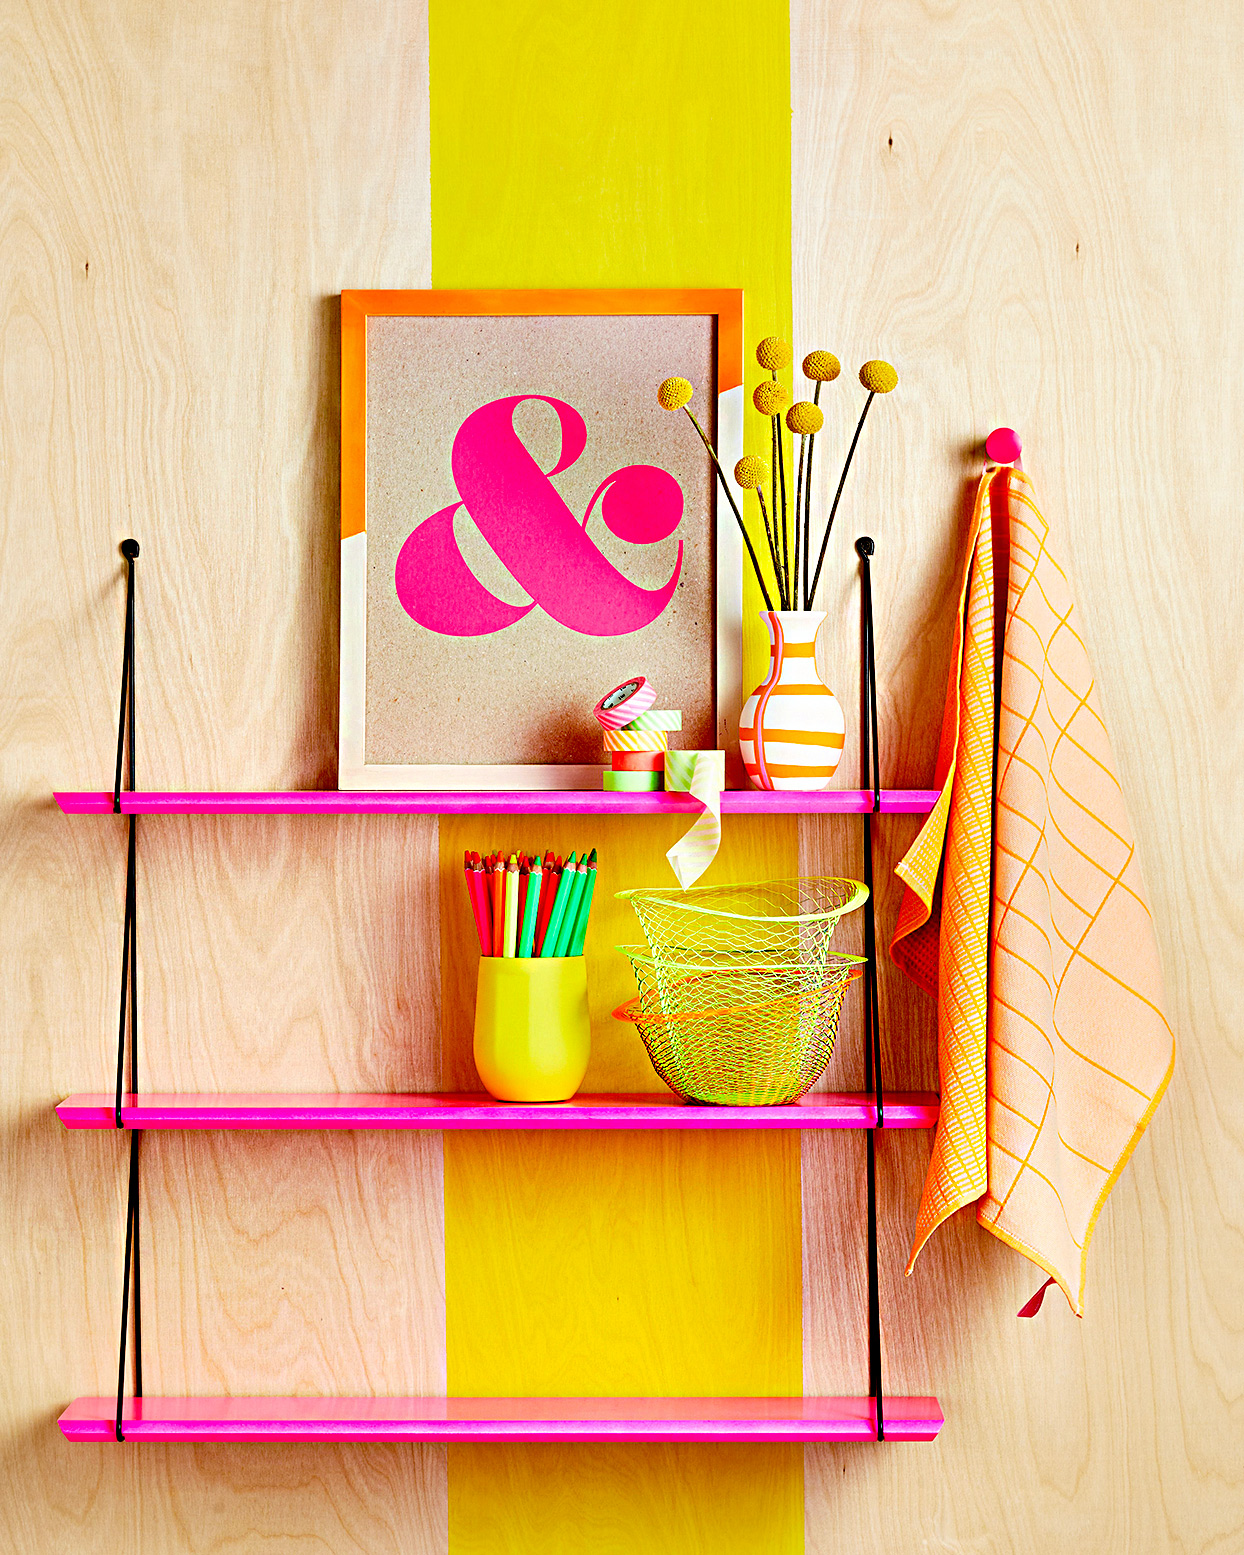 Pink shelving and neon supplies against wooden wall